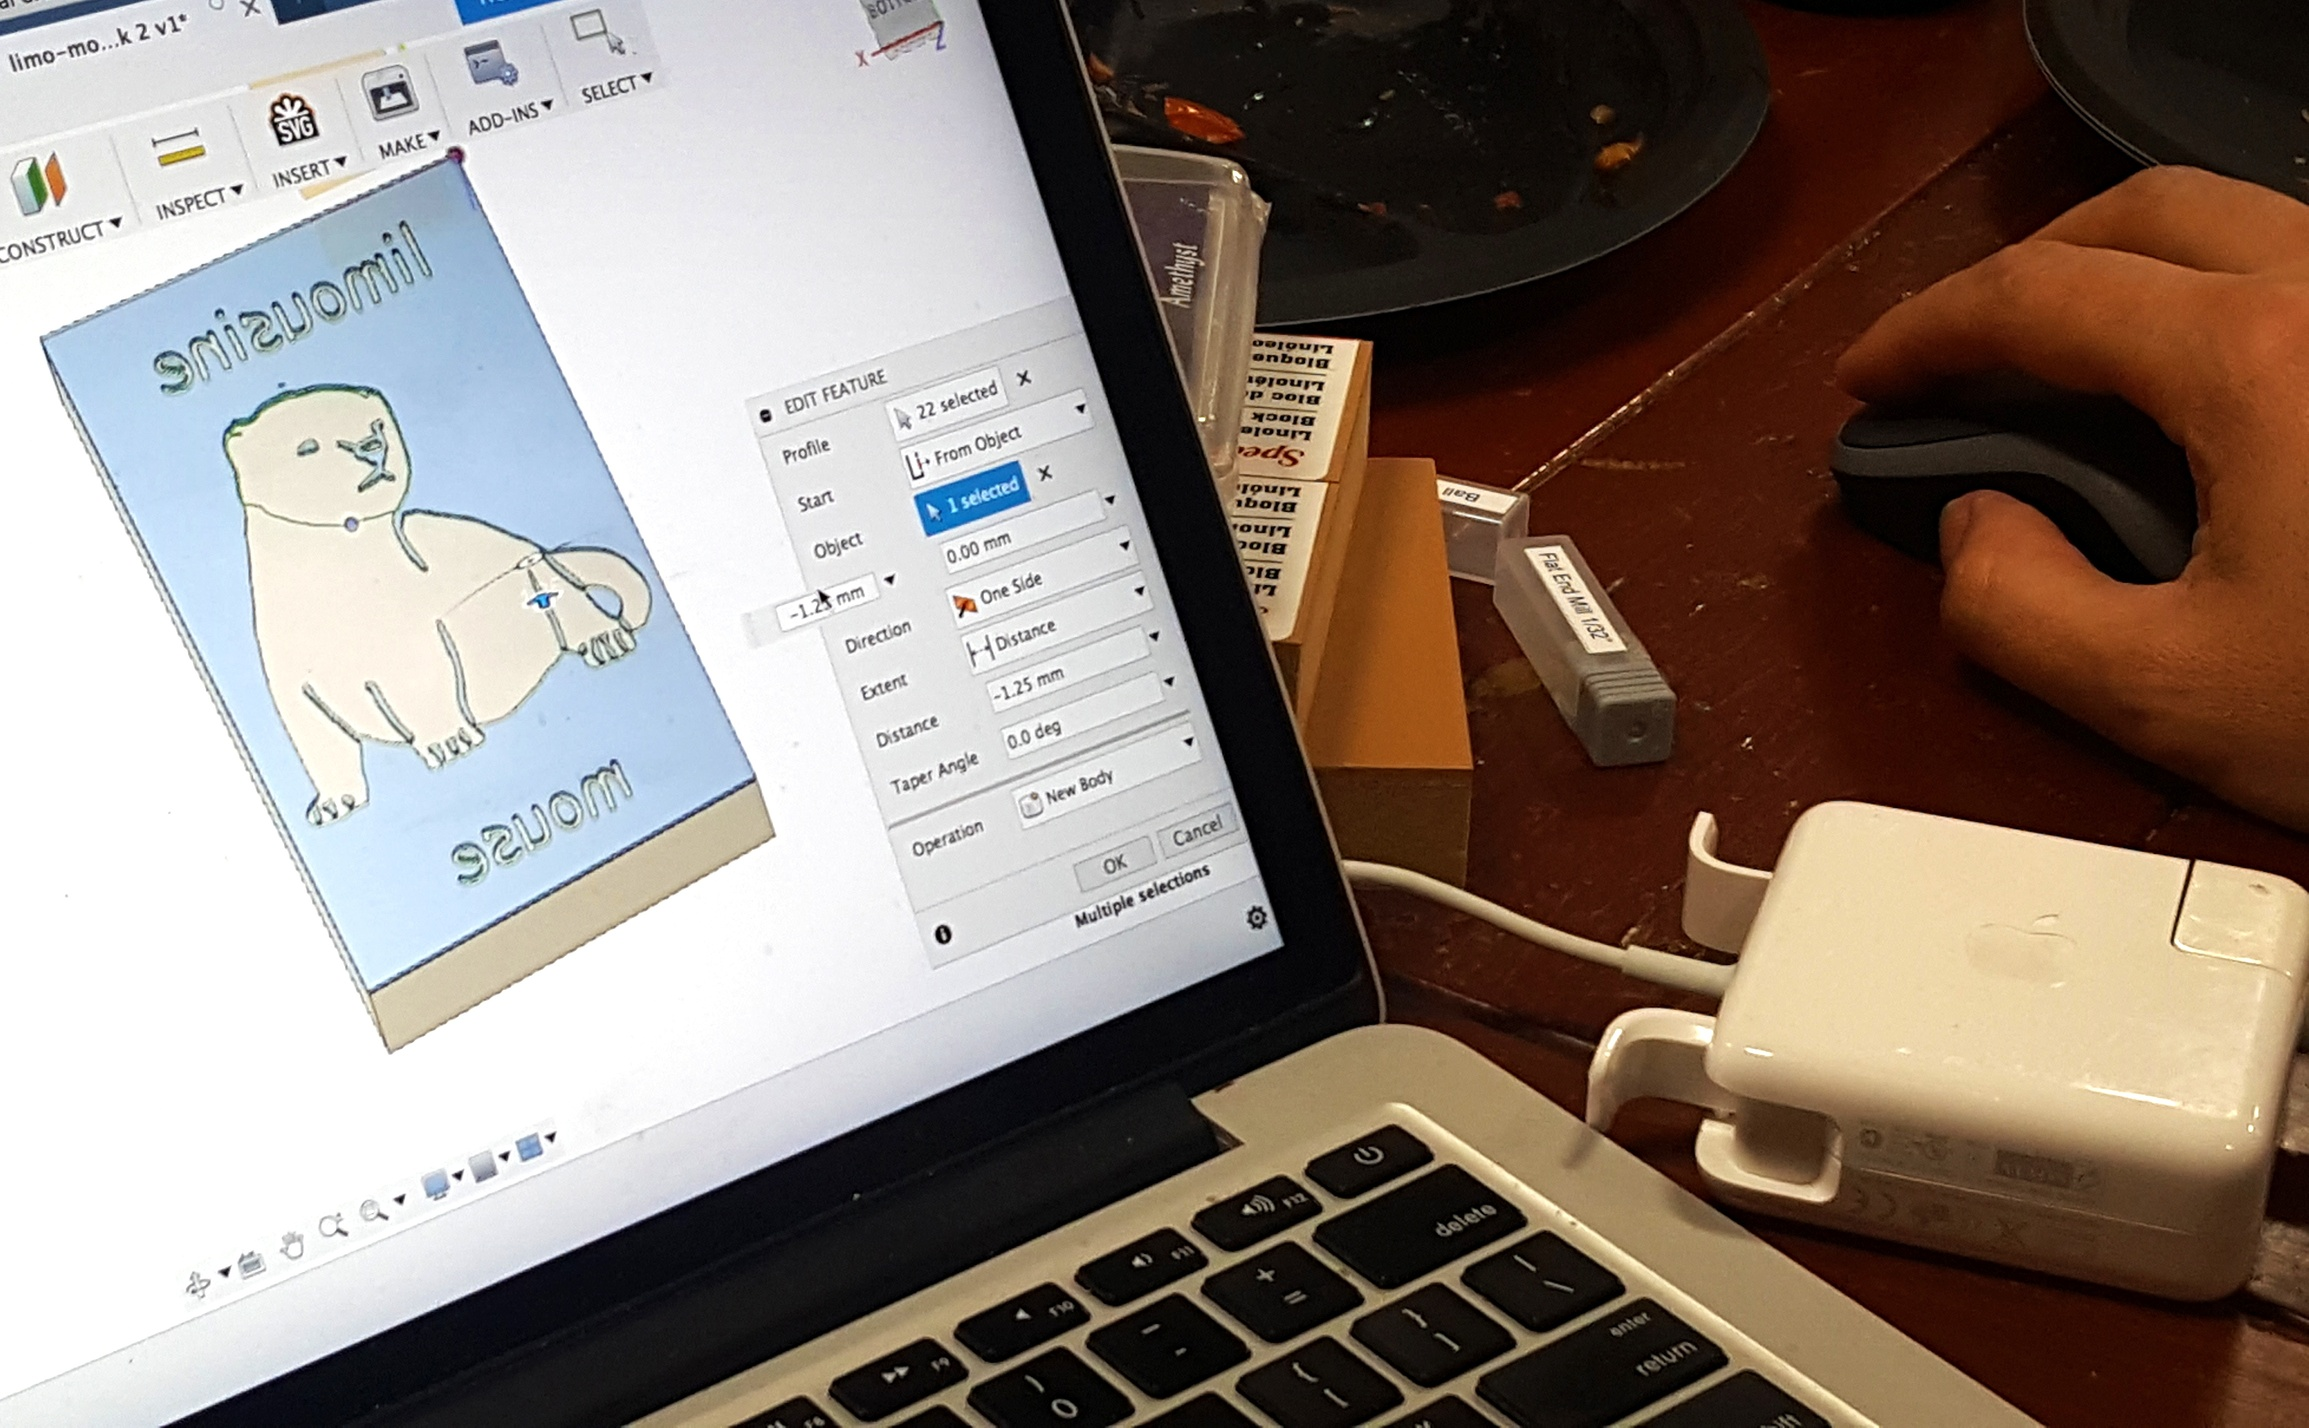 Kim D.'s limousine mouse stamp in Fusion 360.